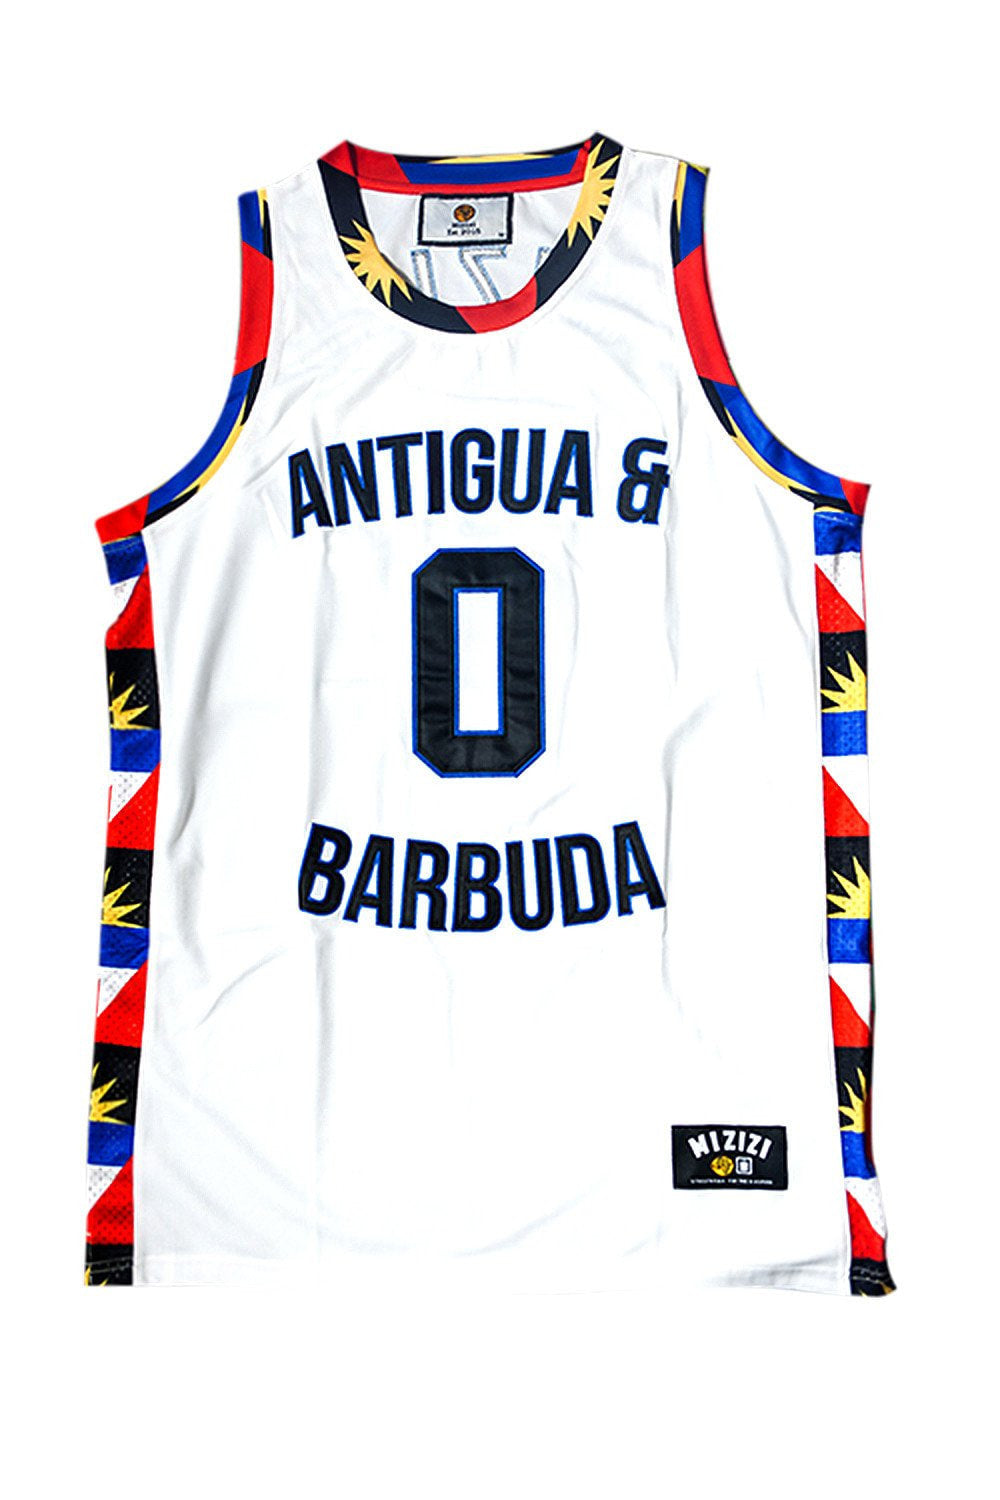 Antigua & Barbuda Basketball Jersey